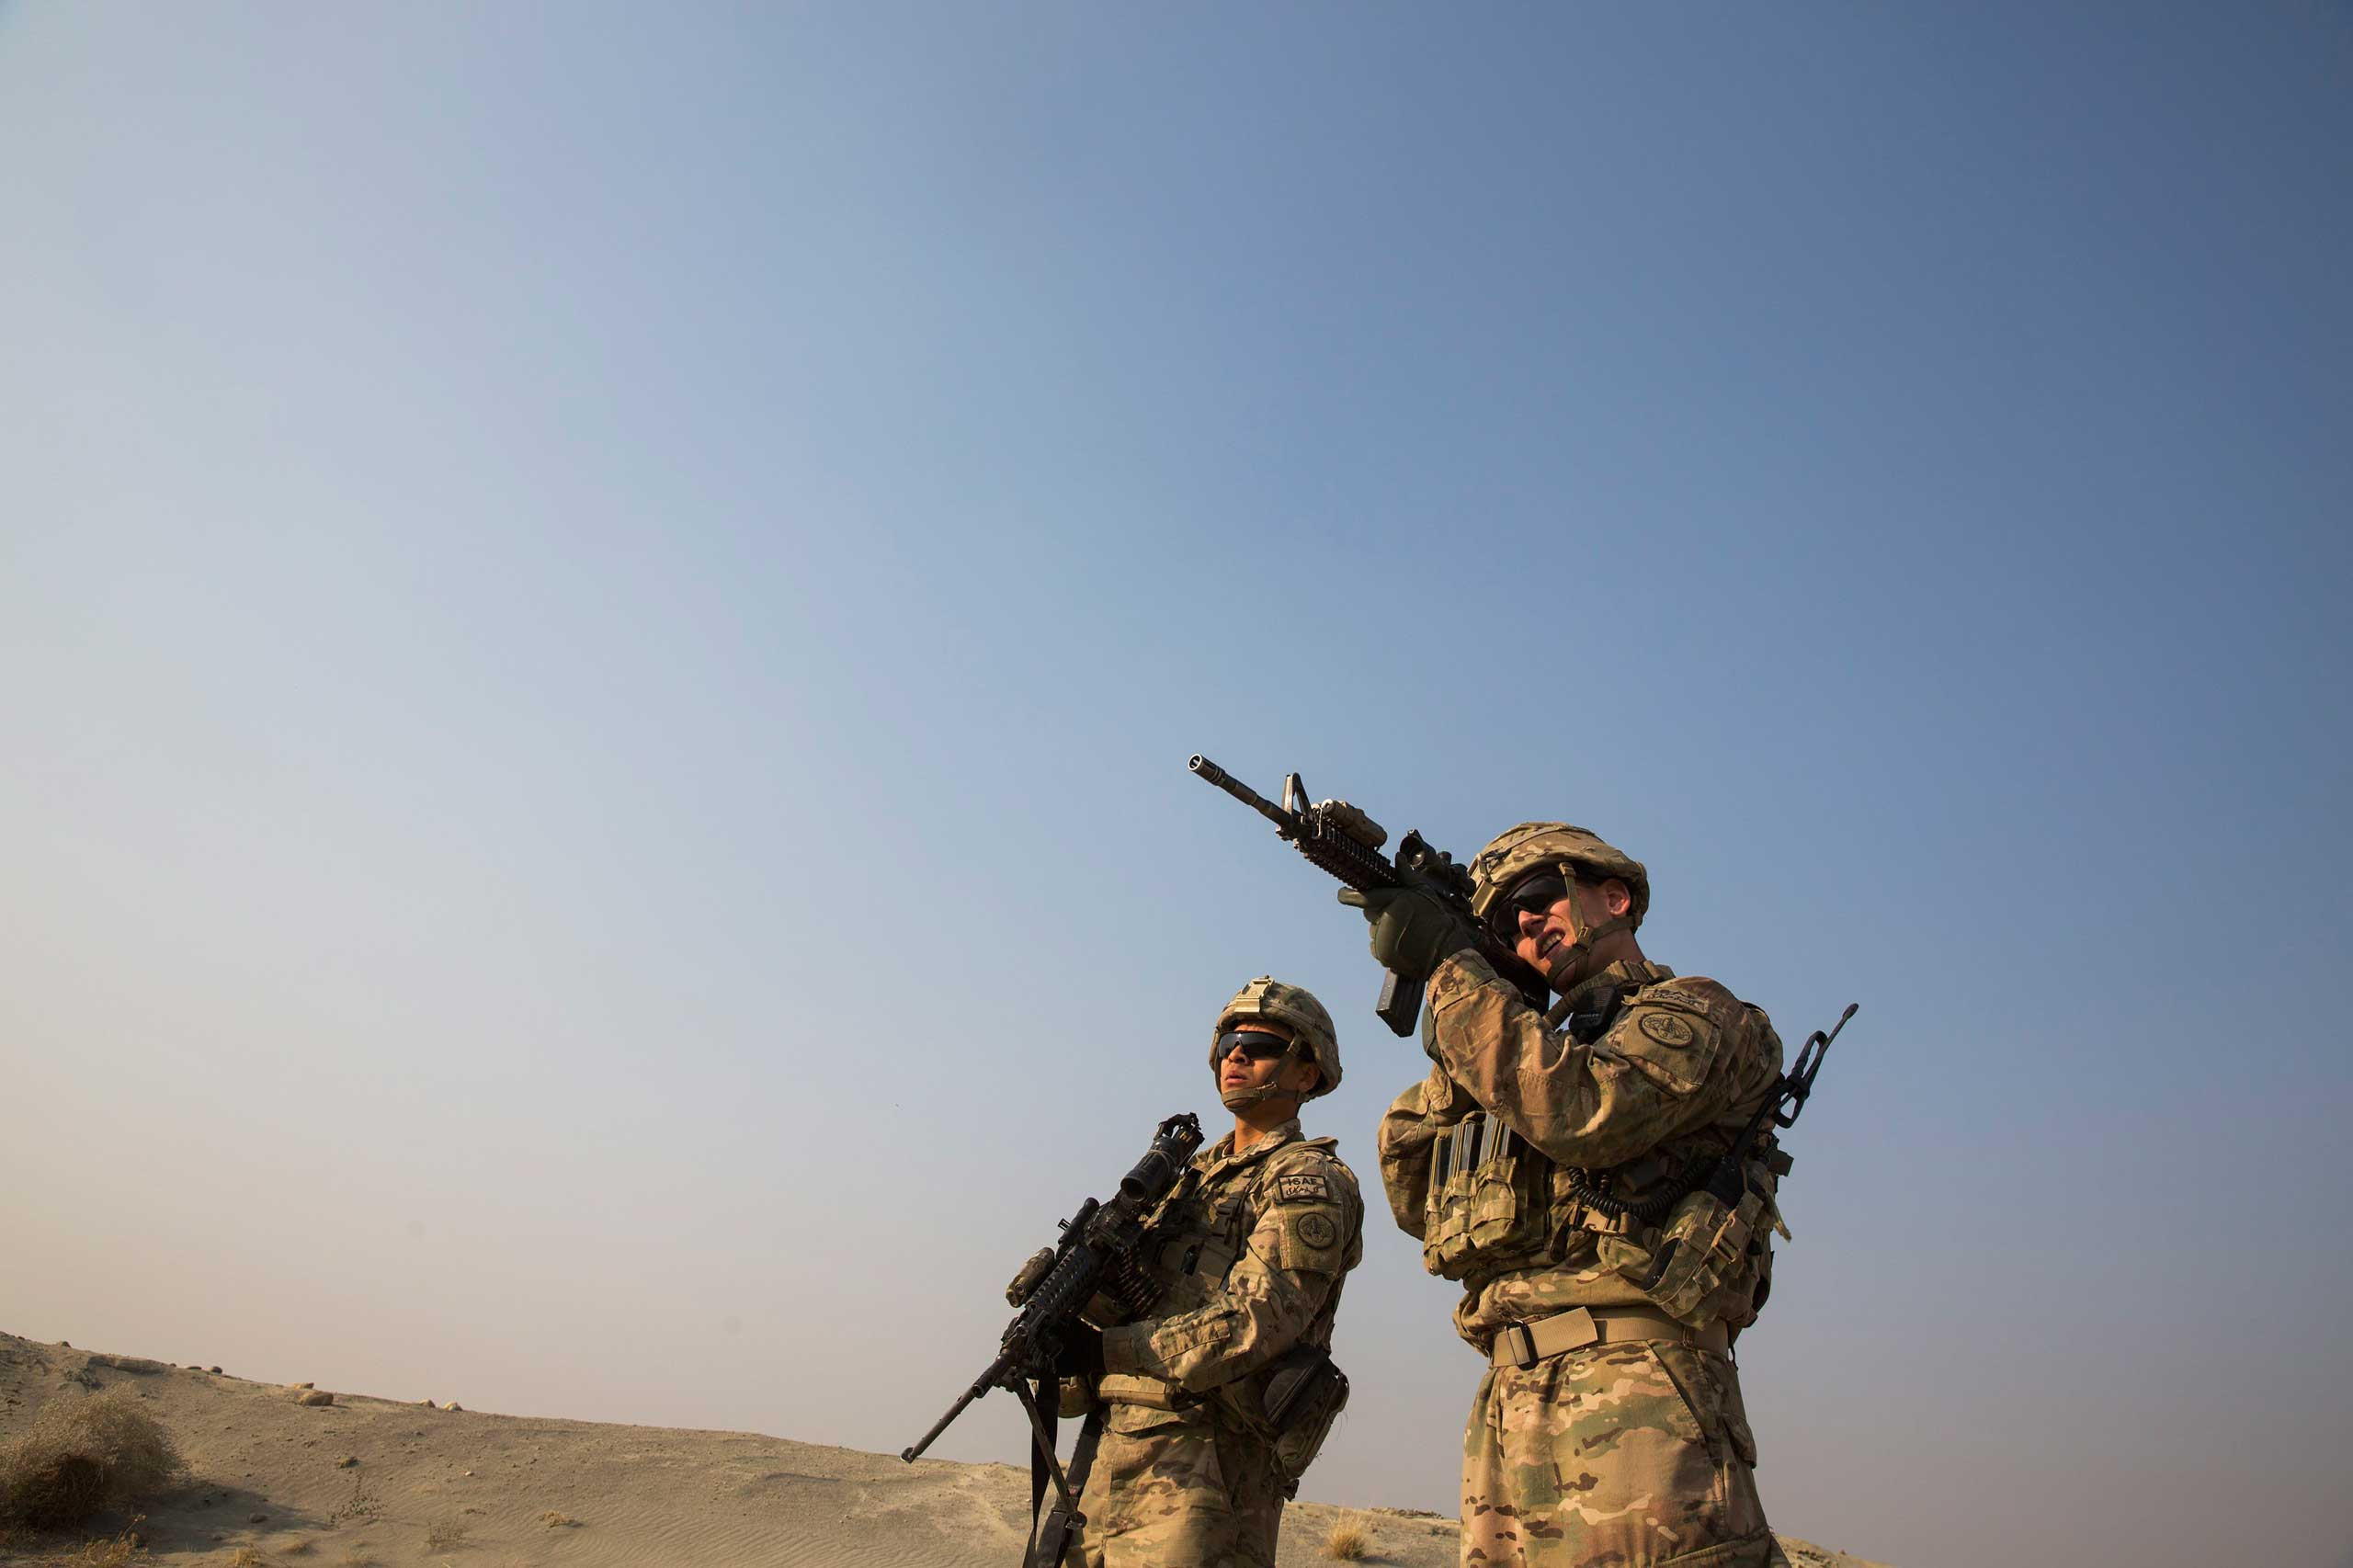 A U.S. soldier from the 3rd Cavalry Regiment uses the optic on his rifle to observe Afghans in the distance, near forward operating base Gamberi, in the Laghman province of Afghanistan, Dec. 15, 2014.